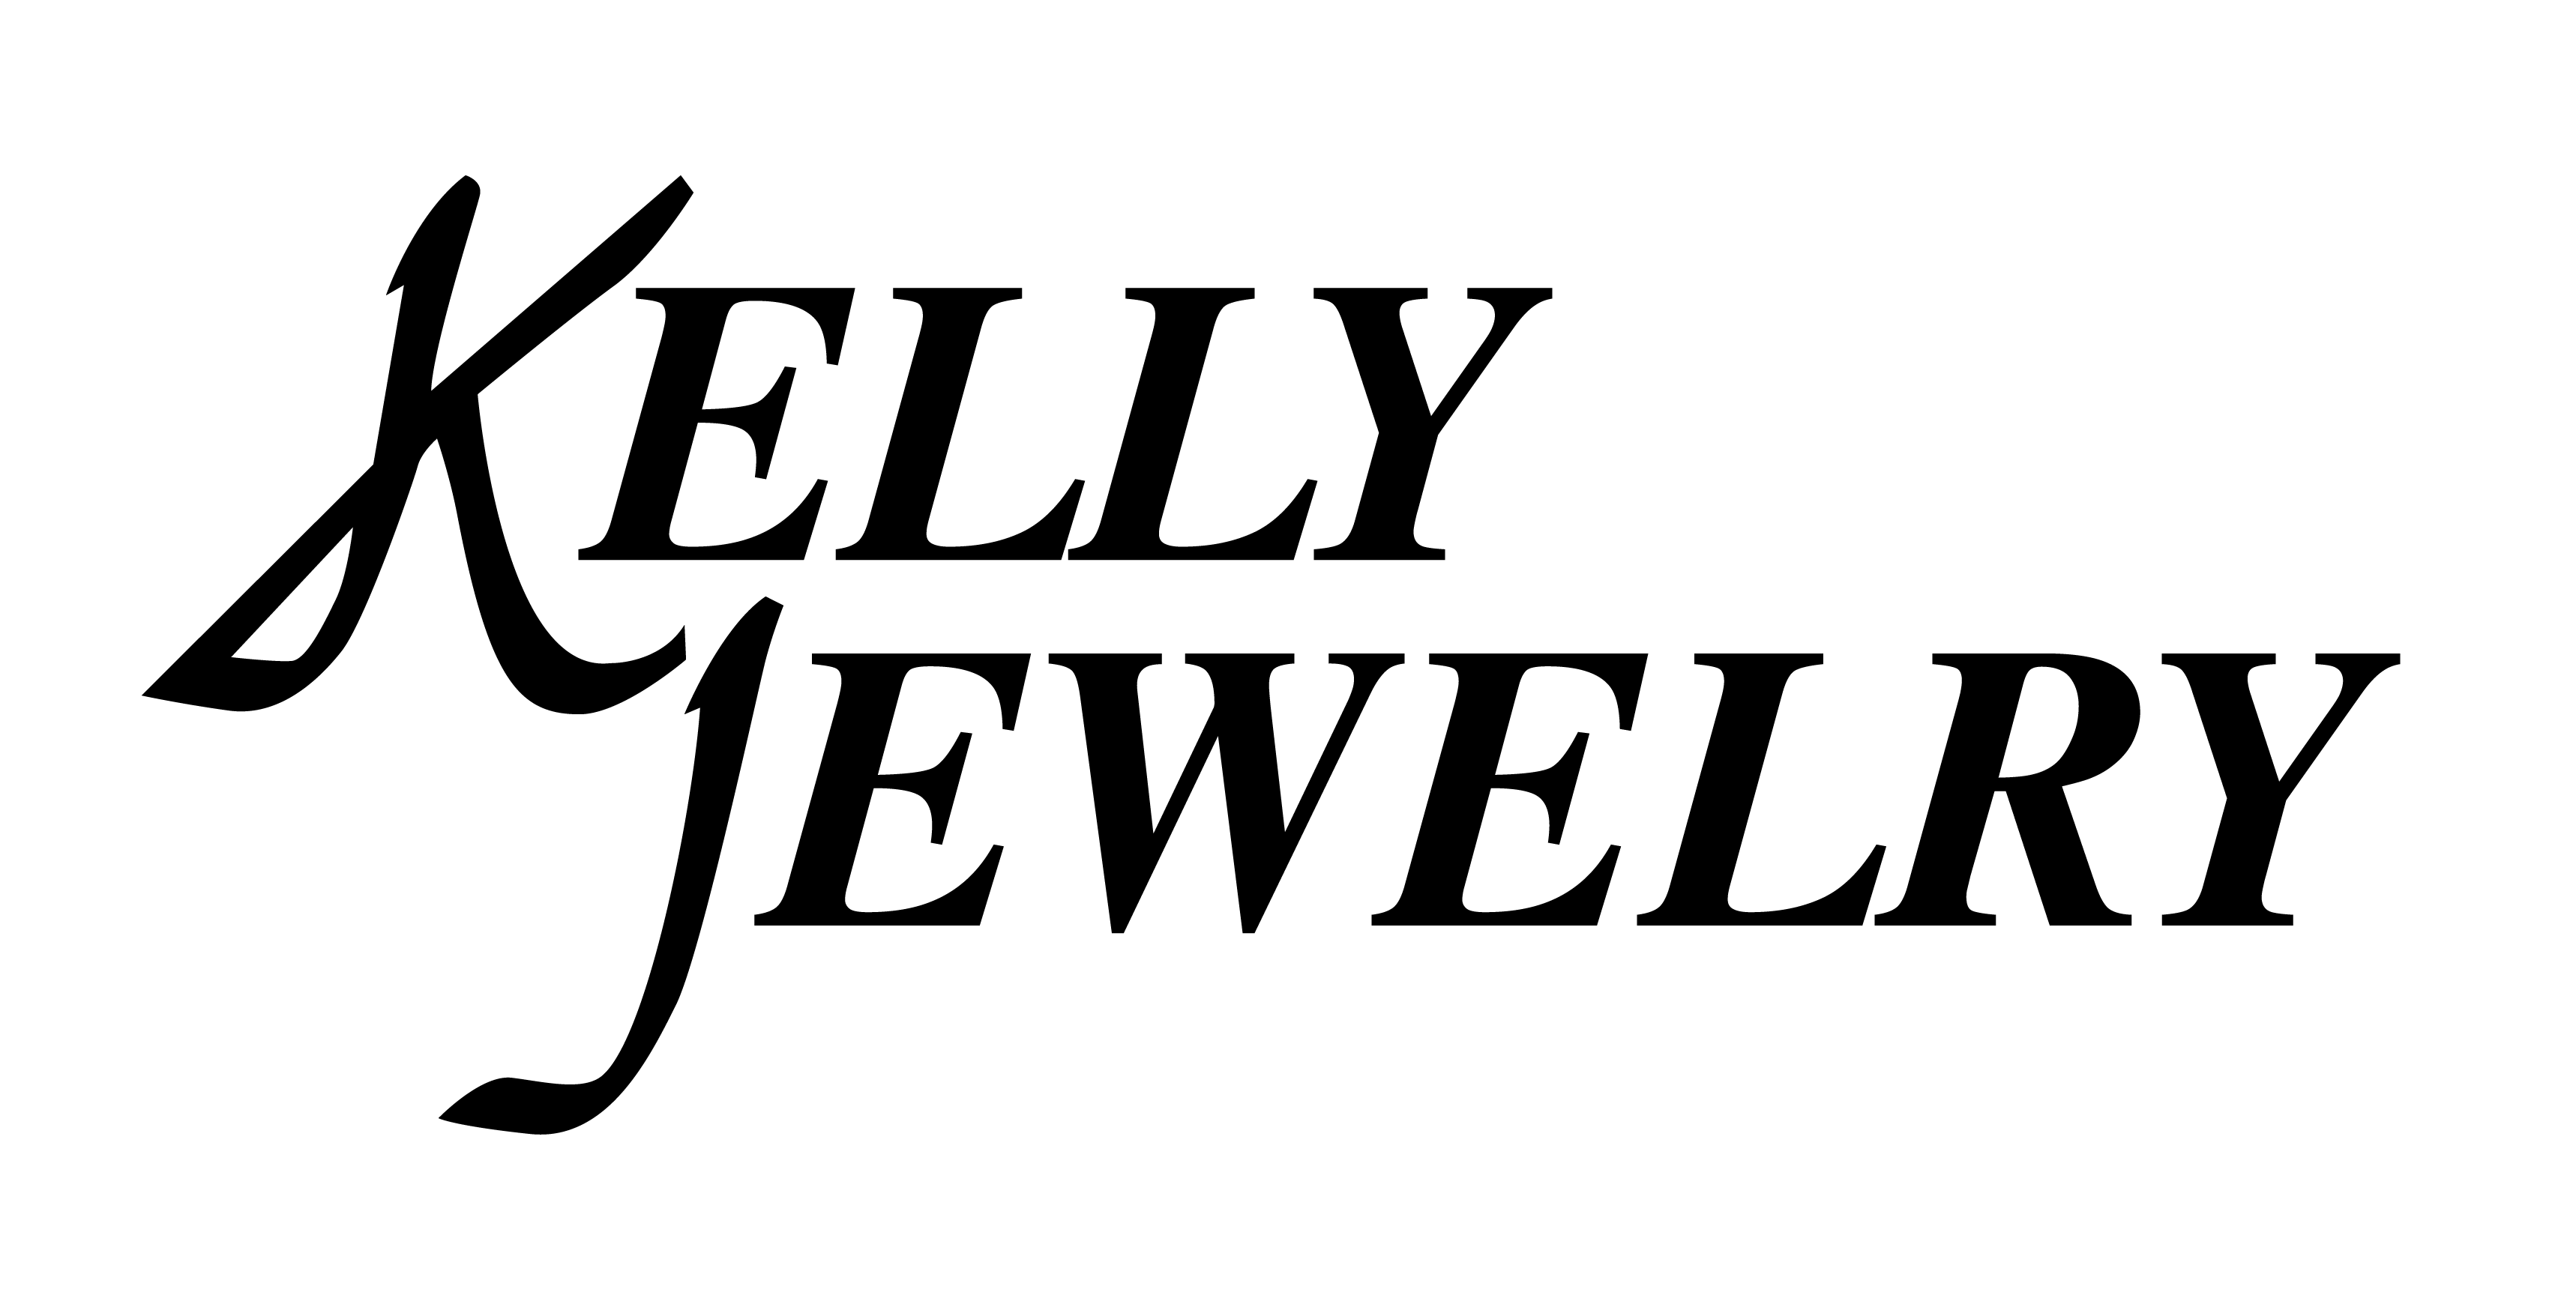 KELLY JEWELRY logo black